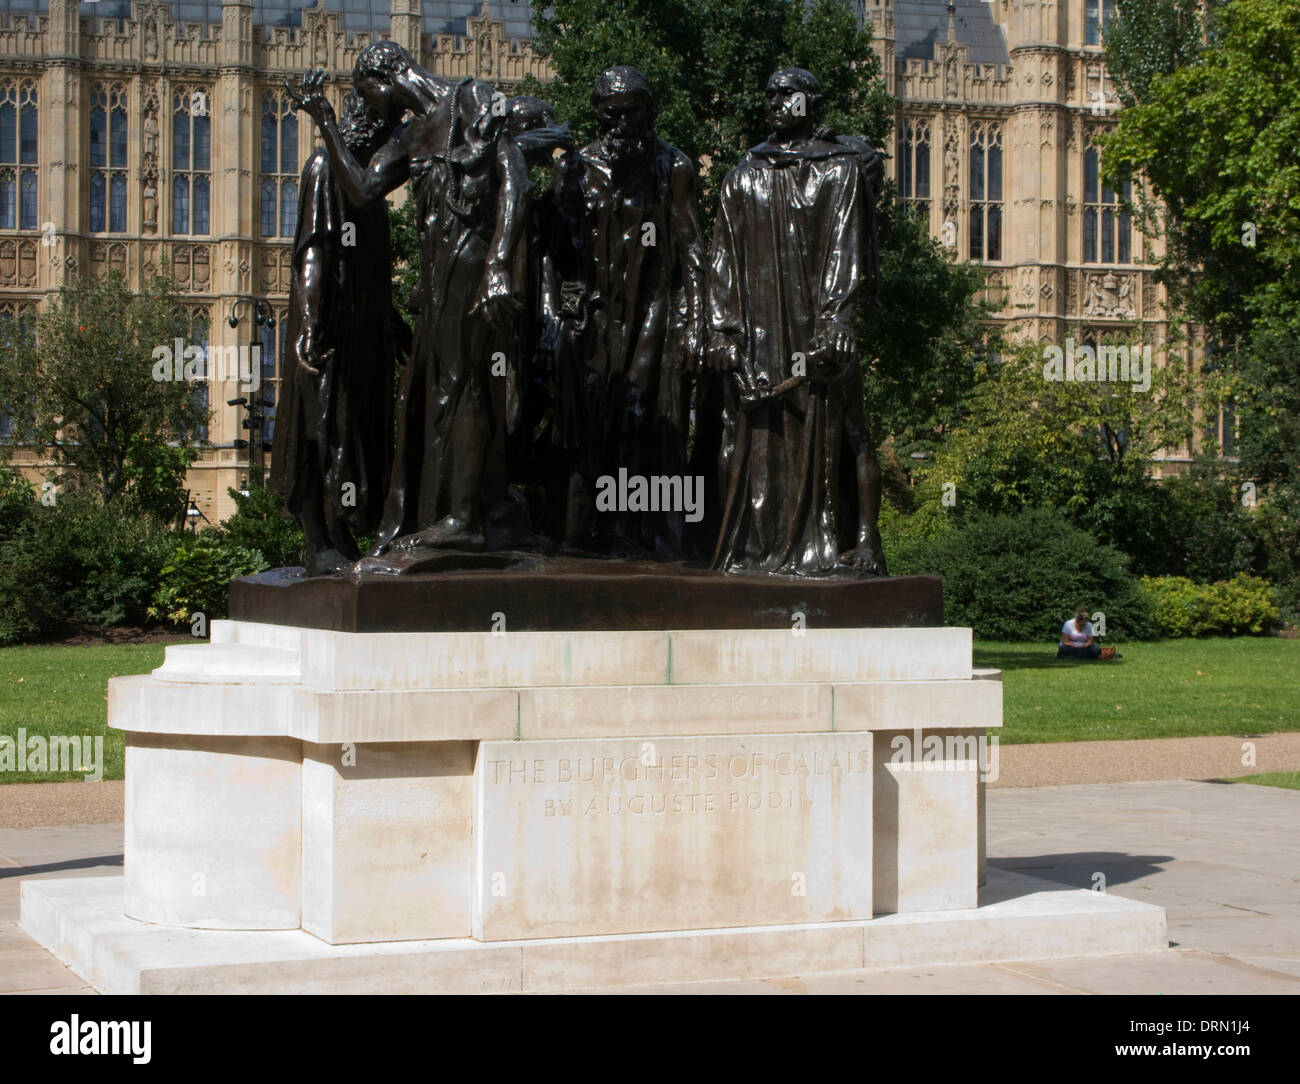 Burghers of Calais by August Rodin Statue Houses of Parliament London UK - Stock Image